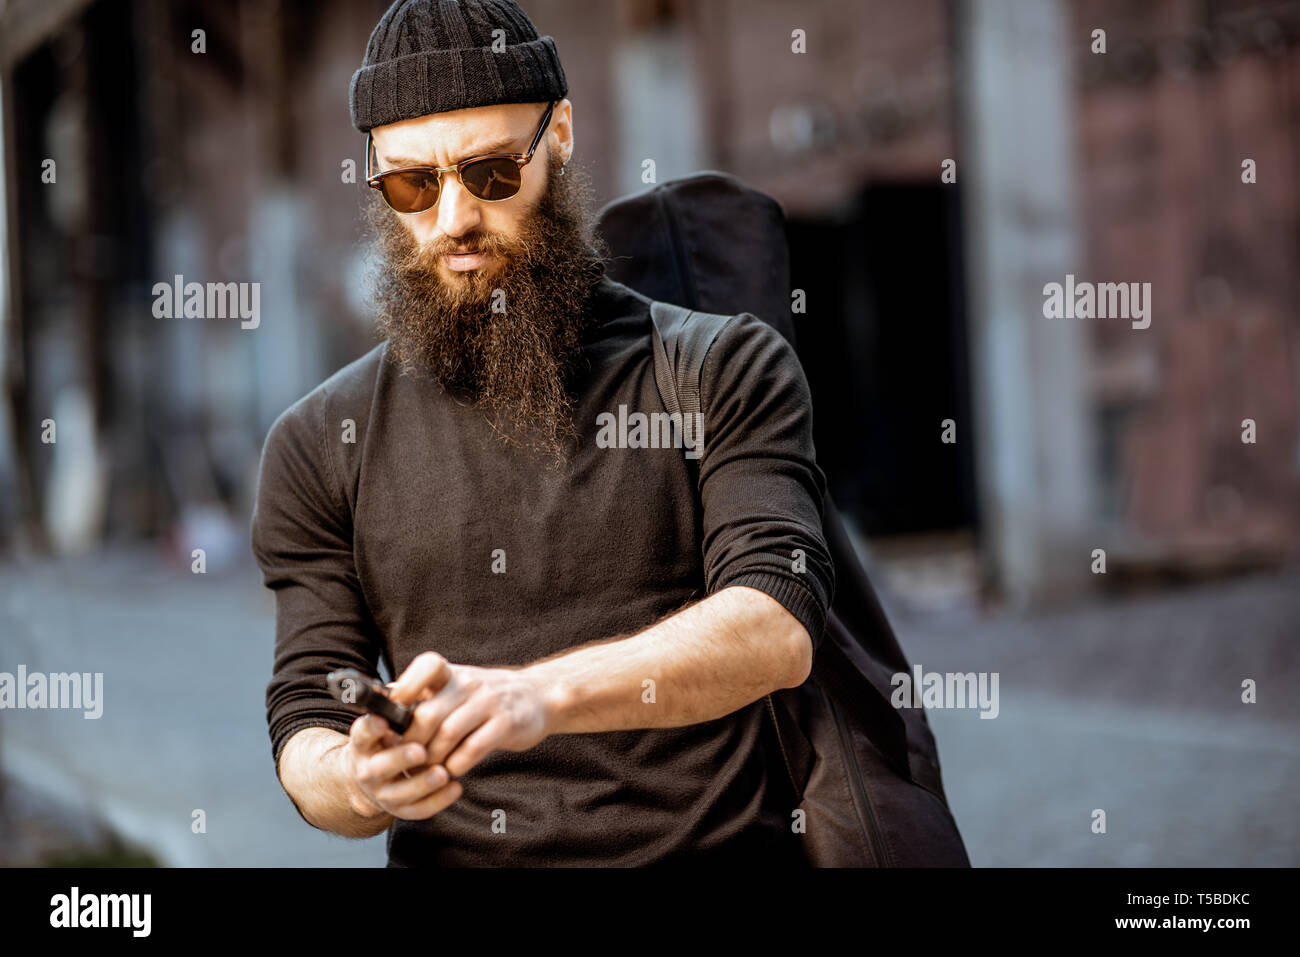 Serious bearded man dressed in black tight clothes as a killer standing with handgun outdoors on the industrial urban background - Stock Image